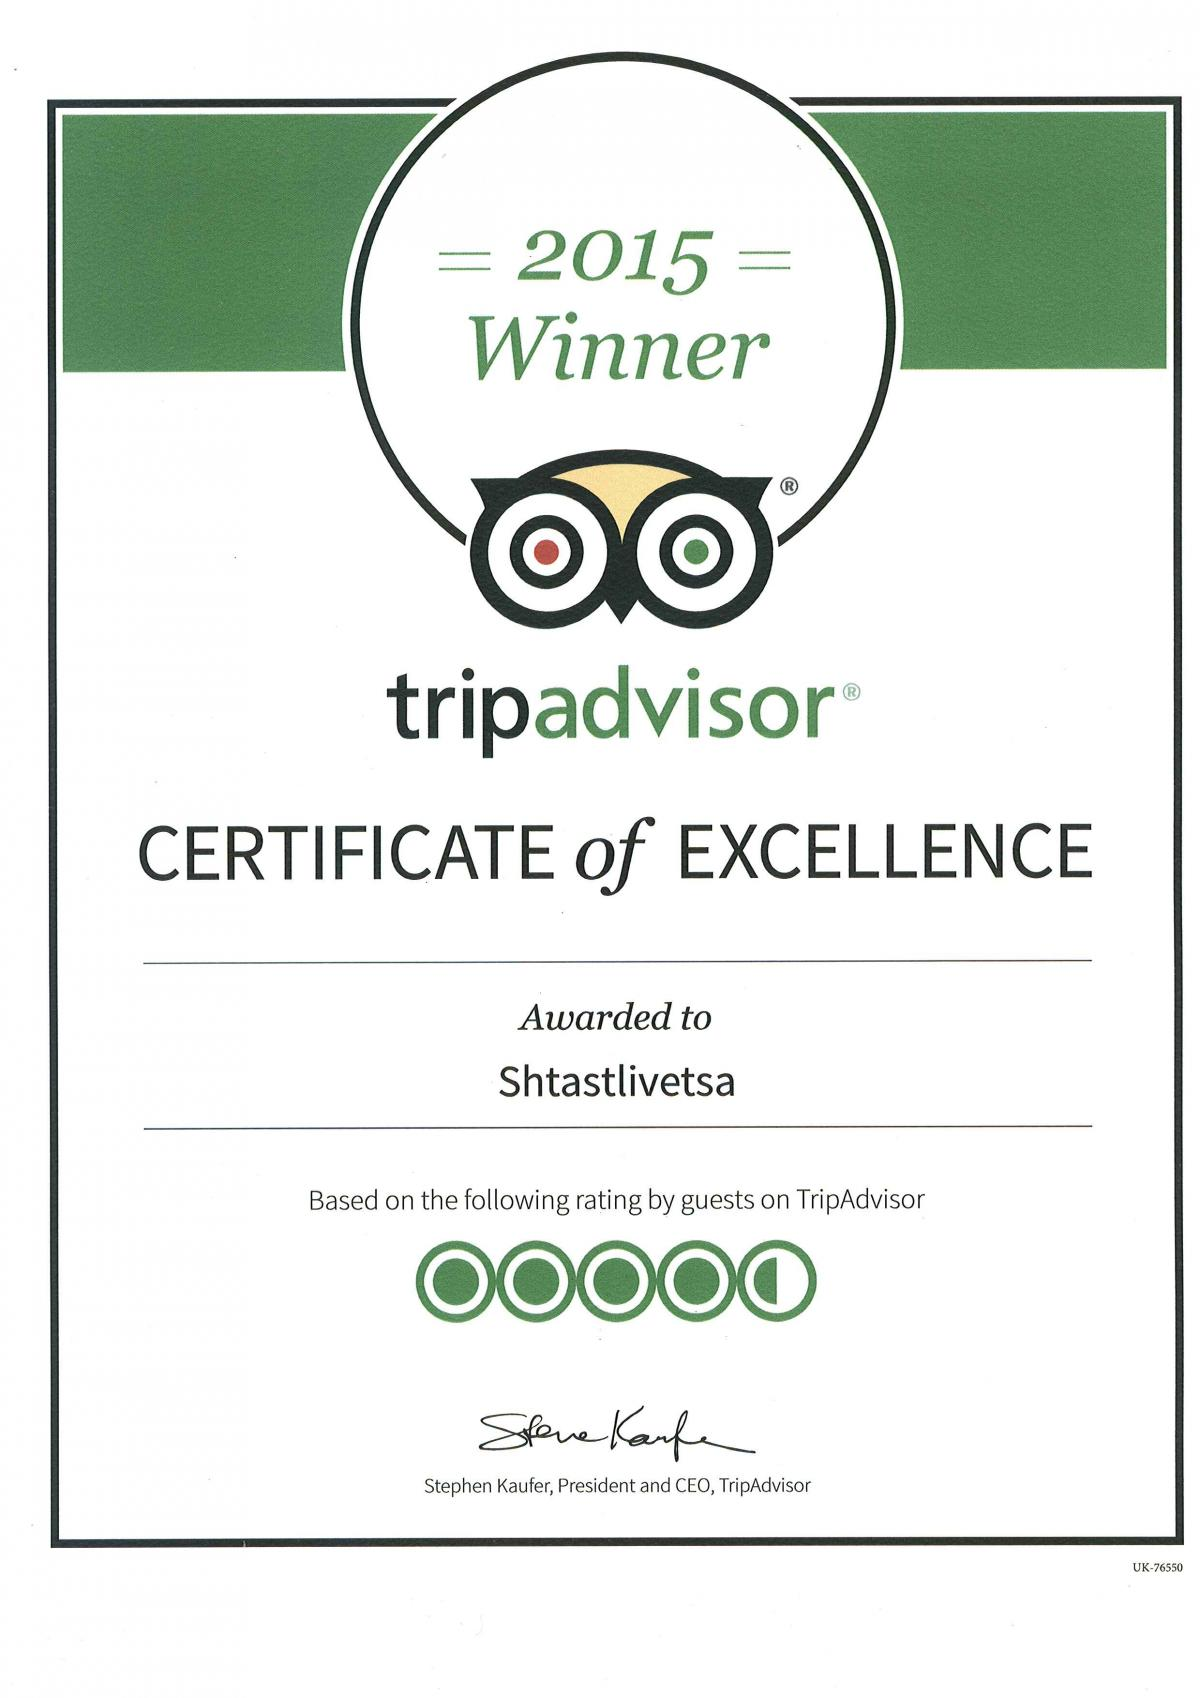 Certificate of Excellence - Tripadvisor 2015